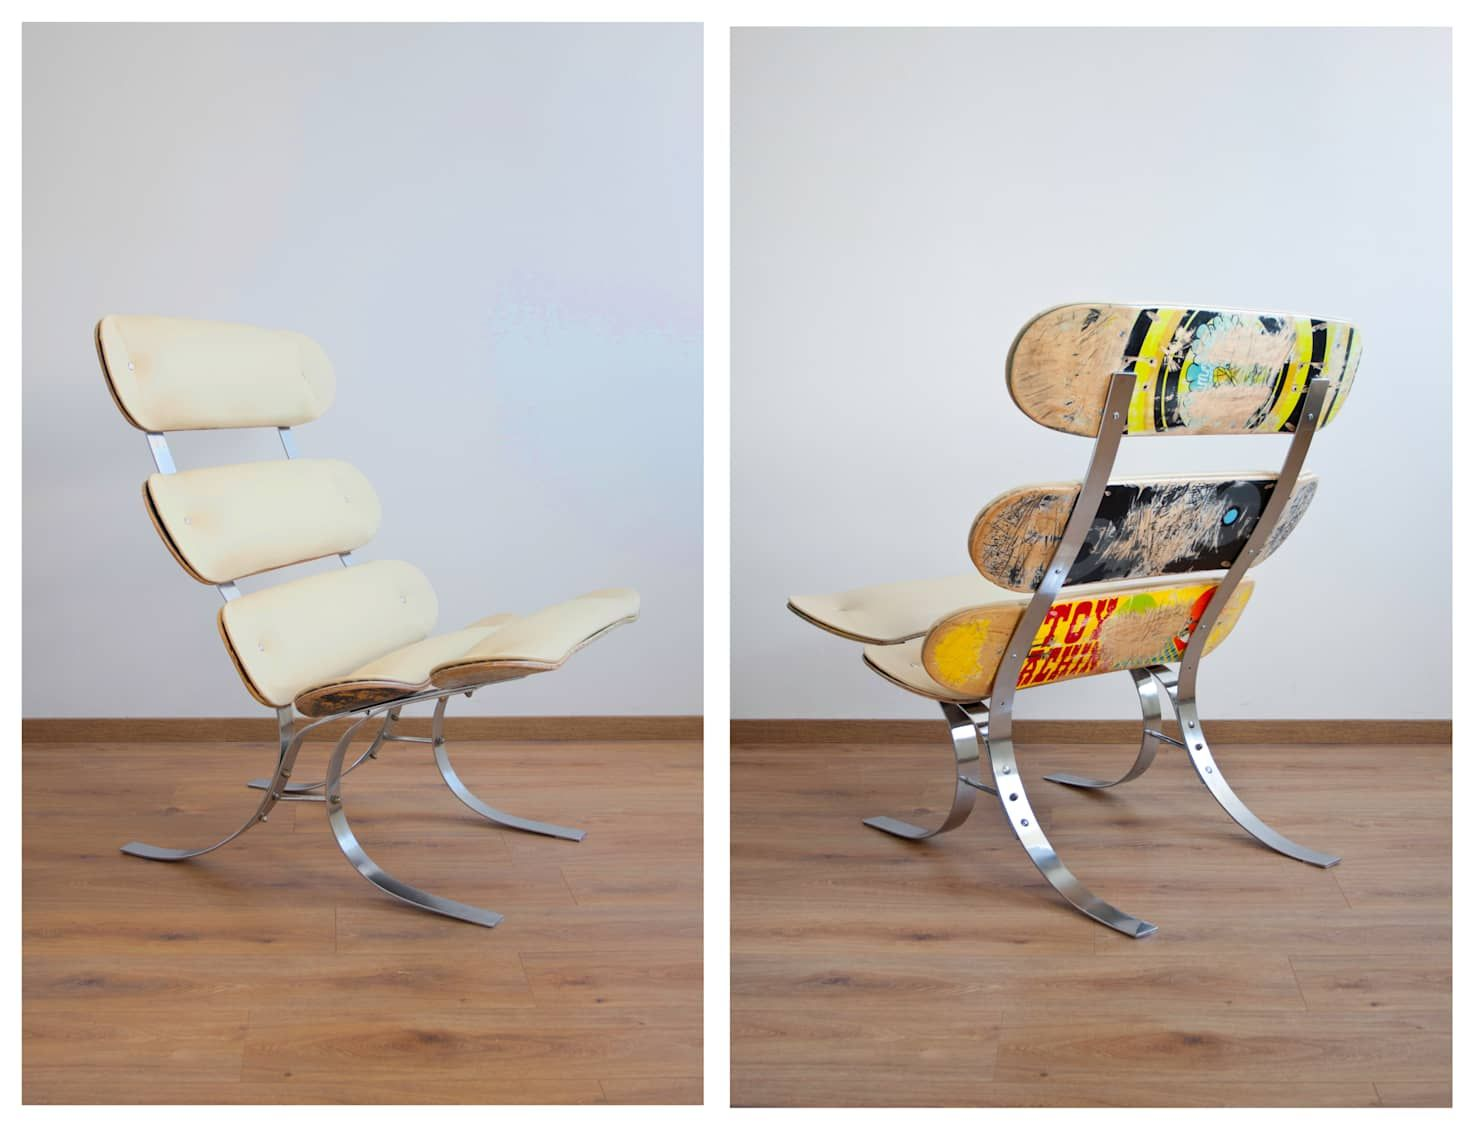 Wohnzimmer Möbel Upcycling Upcycling Skateswing – Skateboard Lounge Chair: Wohnzimmer